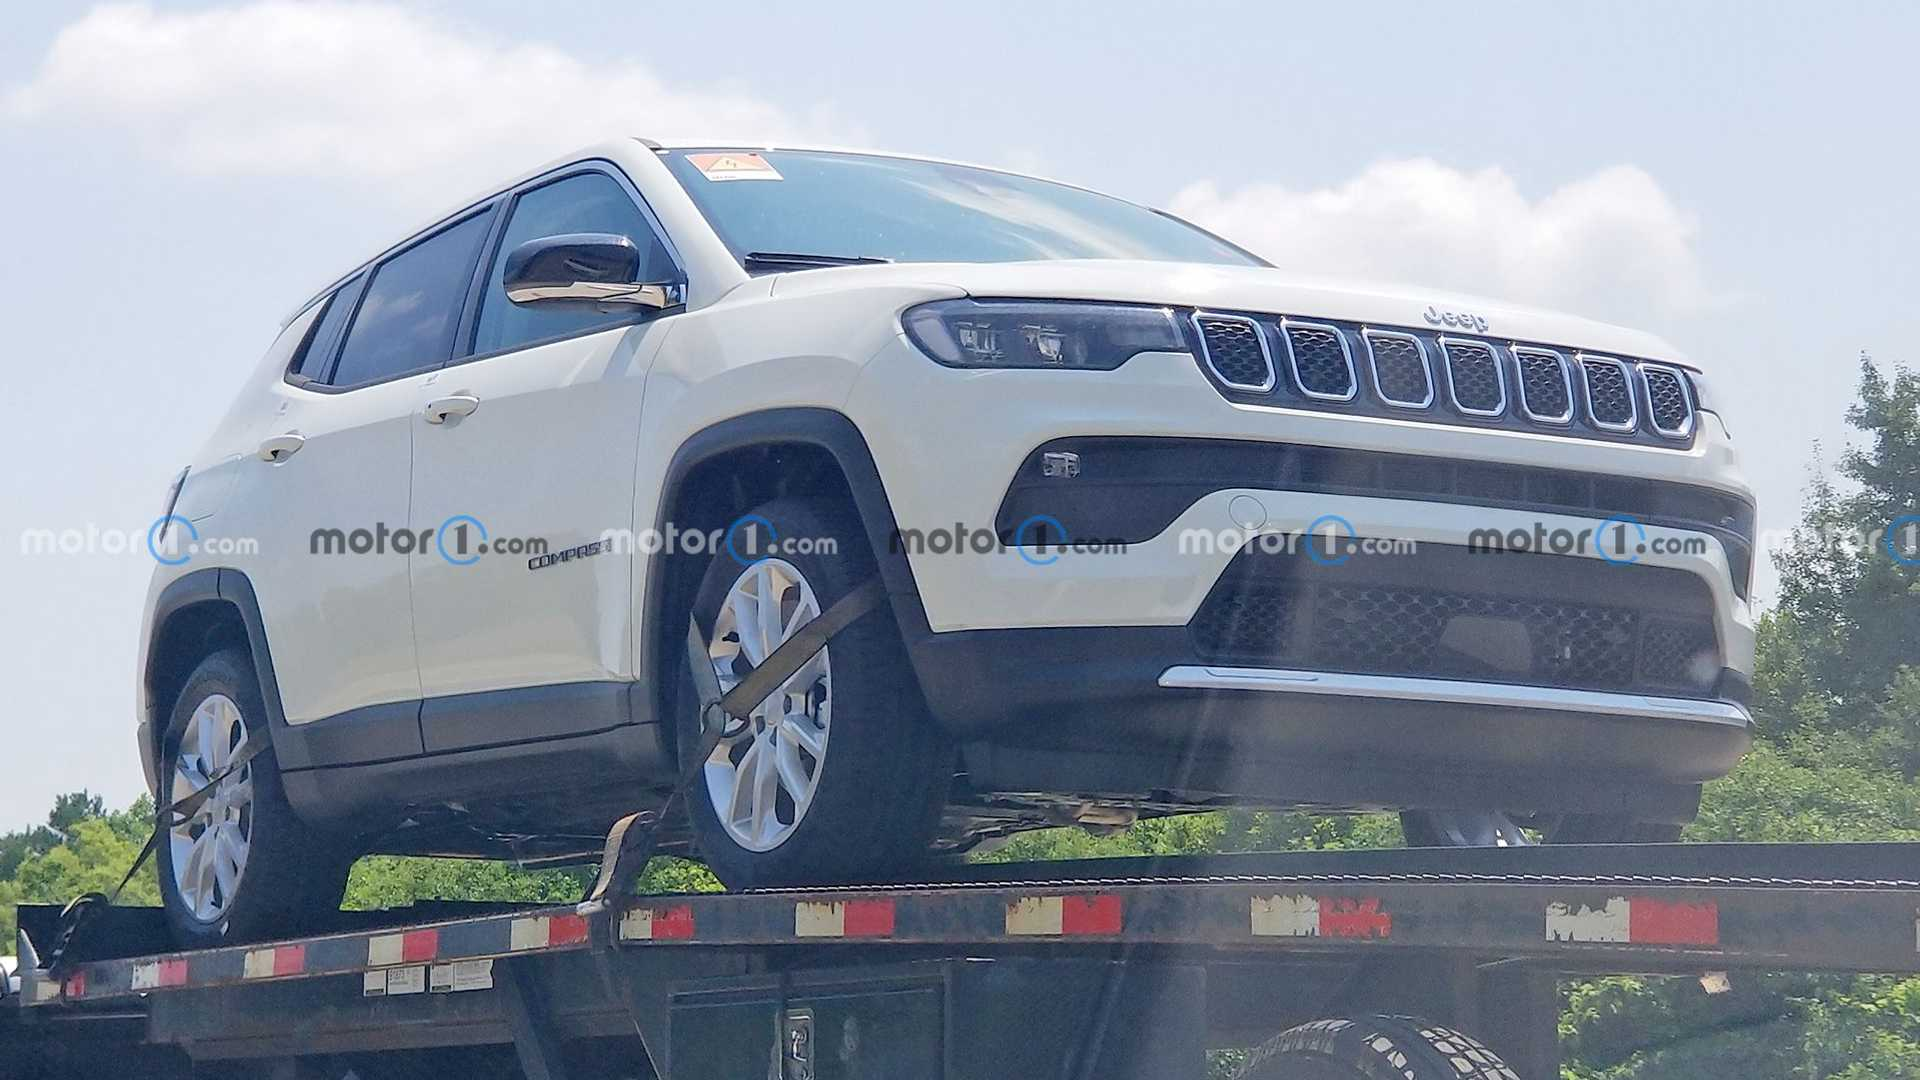 https://cdn.motor1.com/images/mgl/PzWXr/s6/jeep-compass-hybrid-front-view-spy-photo.jpg